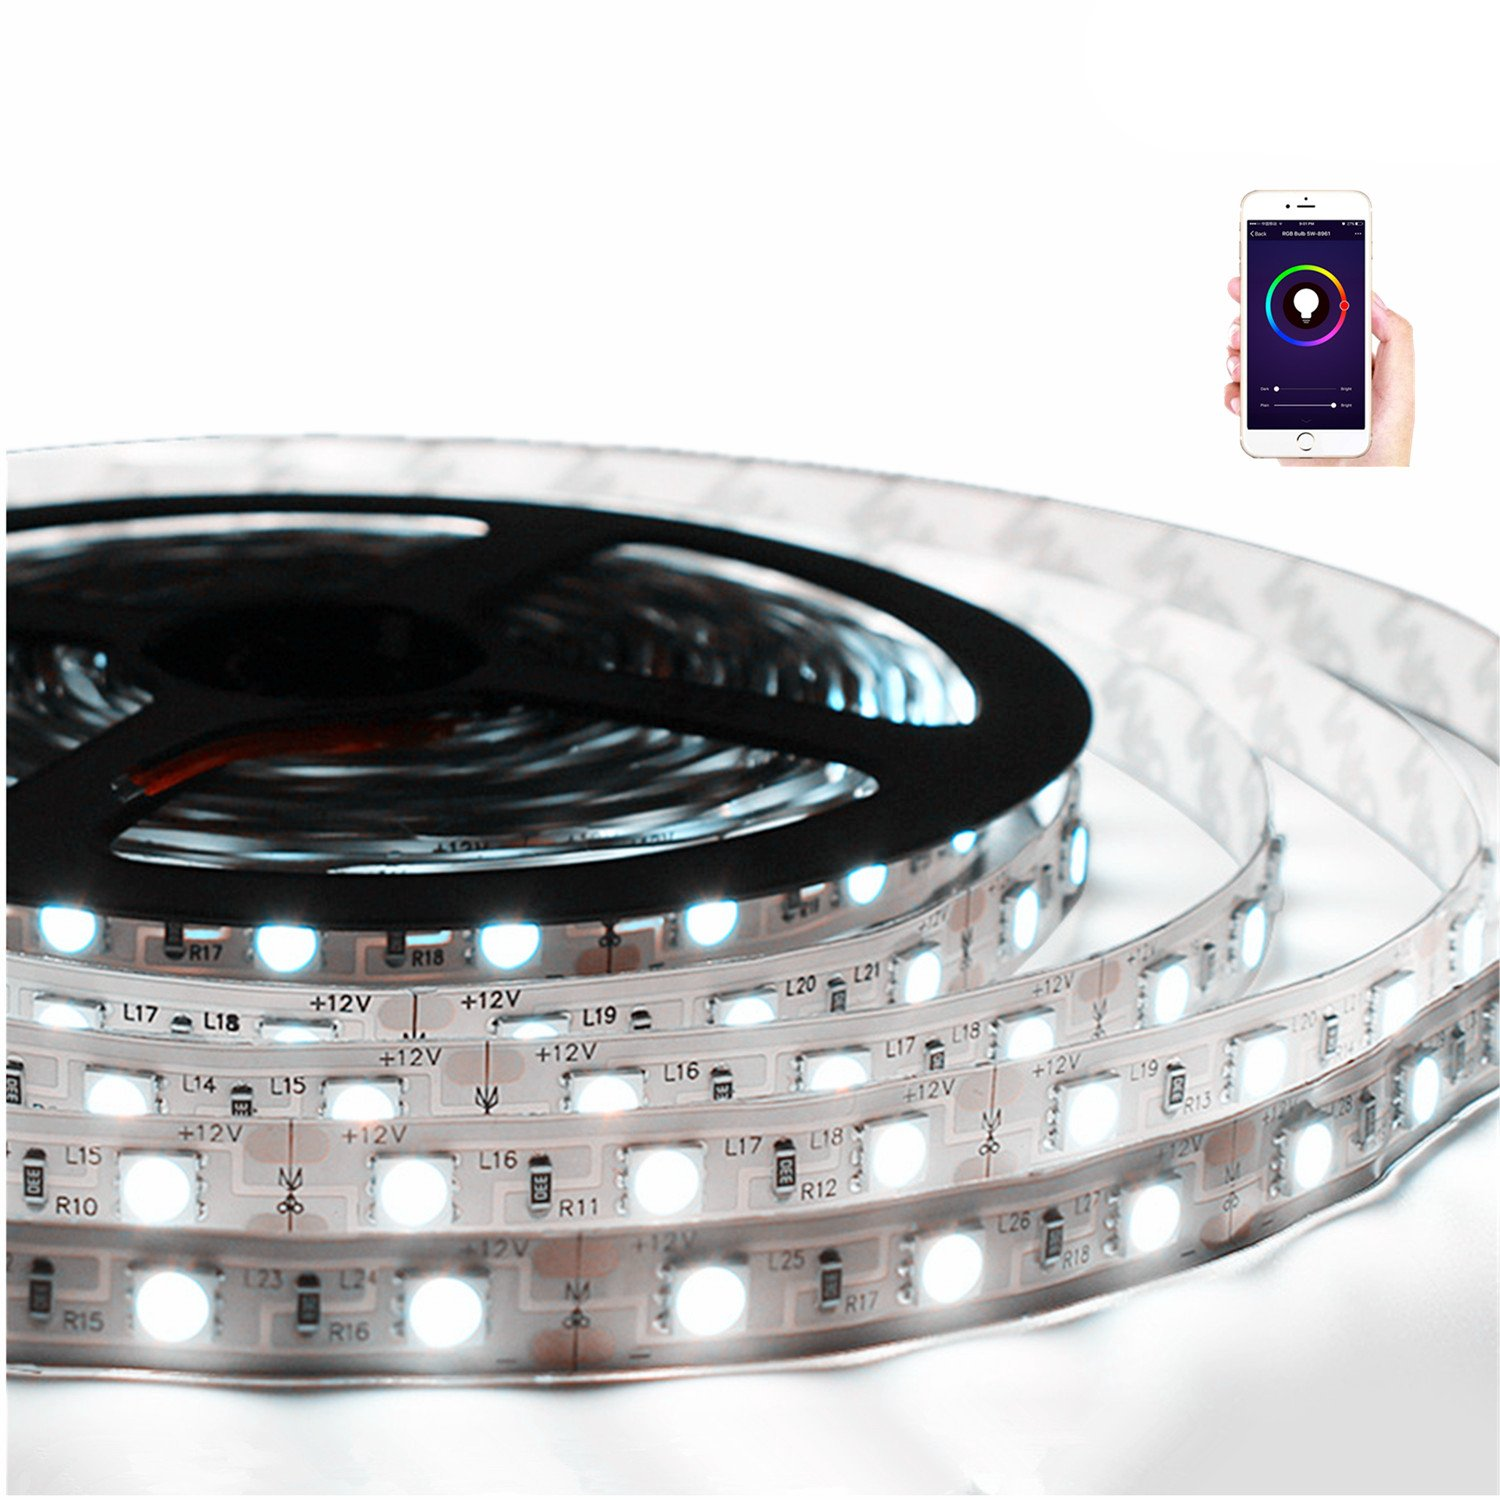 Cevitor Smart LED Light Strip 5M/16.4Ft,Wi-Fi, Dimmable,Smartphone Controlled and Alexa For Voice Control,16 million Color,Not Hub Requires